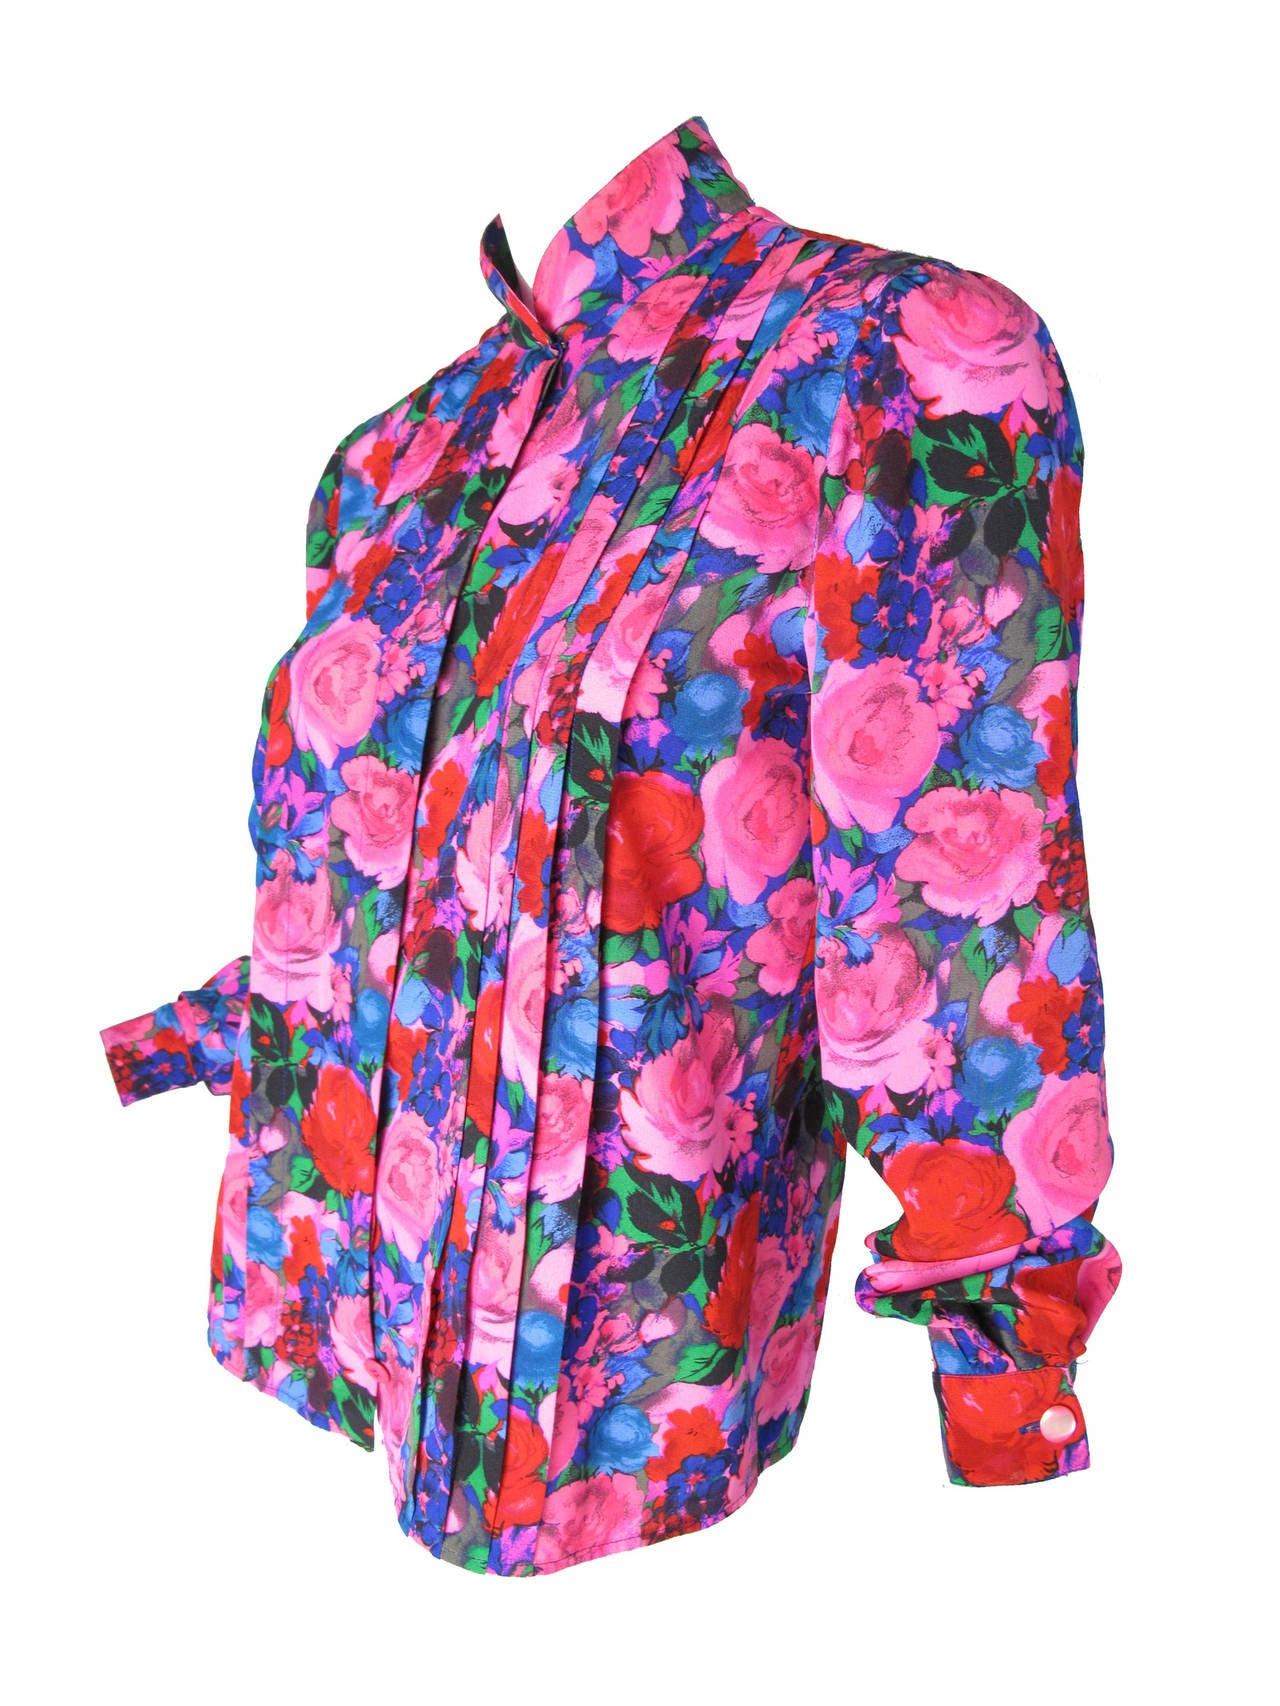 Pink Ungaro Silk Floral Blouse with Pleating For Sale